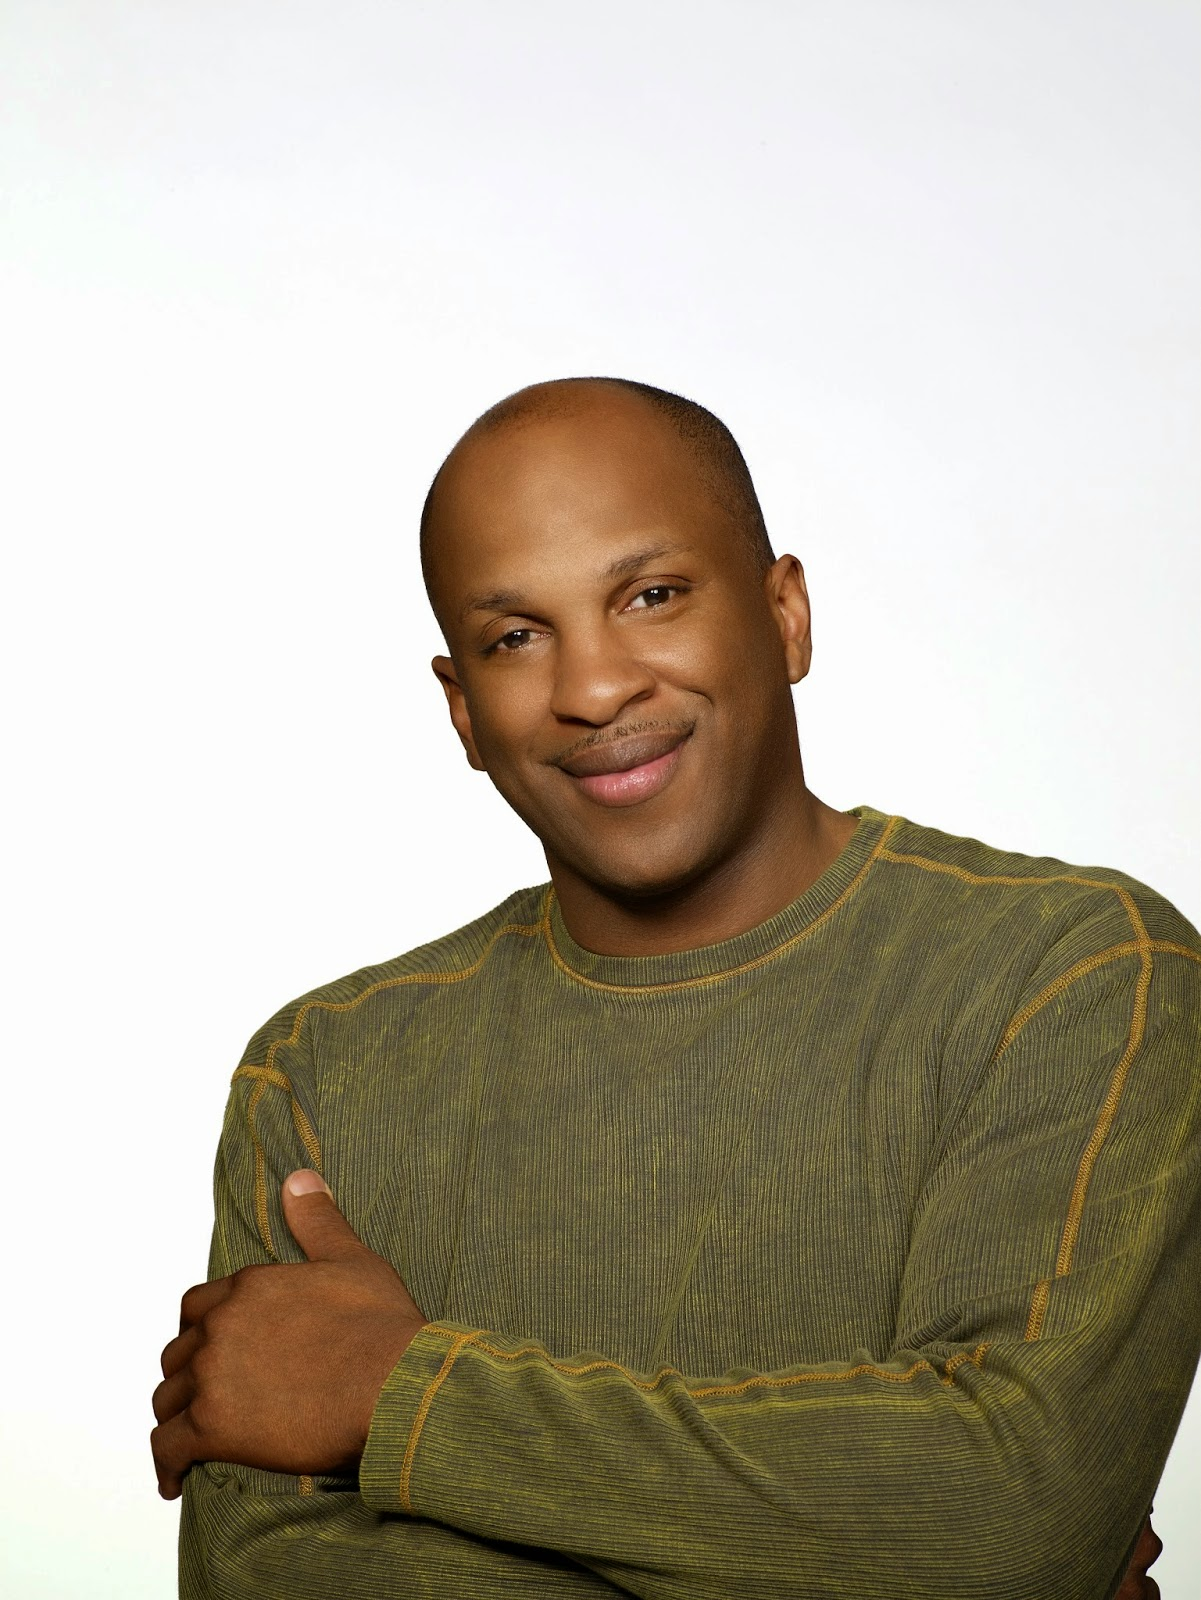 Donnie McClurkin - Duets 2014 Biography and History